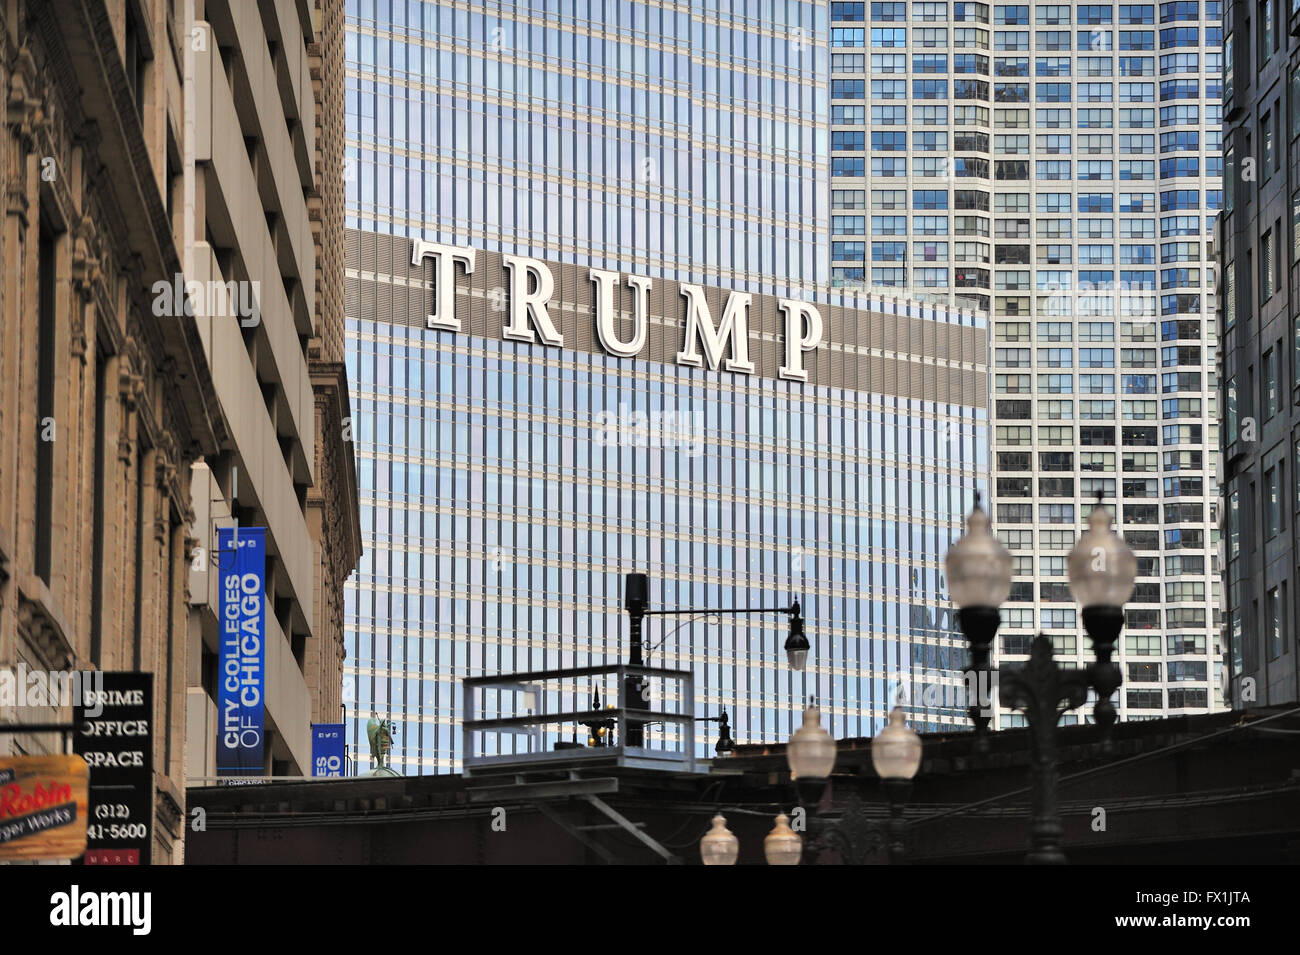 Chicago's second tallest skyscraper, Trump Tower, as viewed through older buildings that form a canyon above - Stock Image